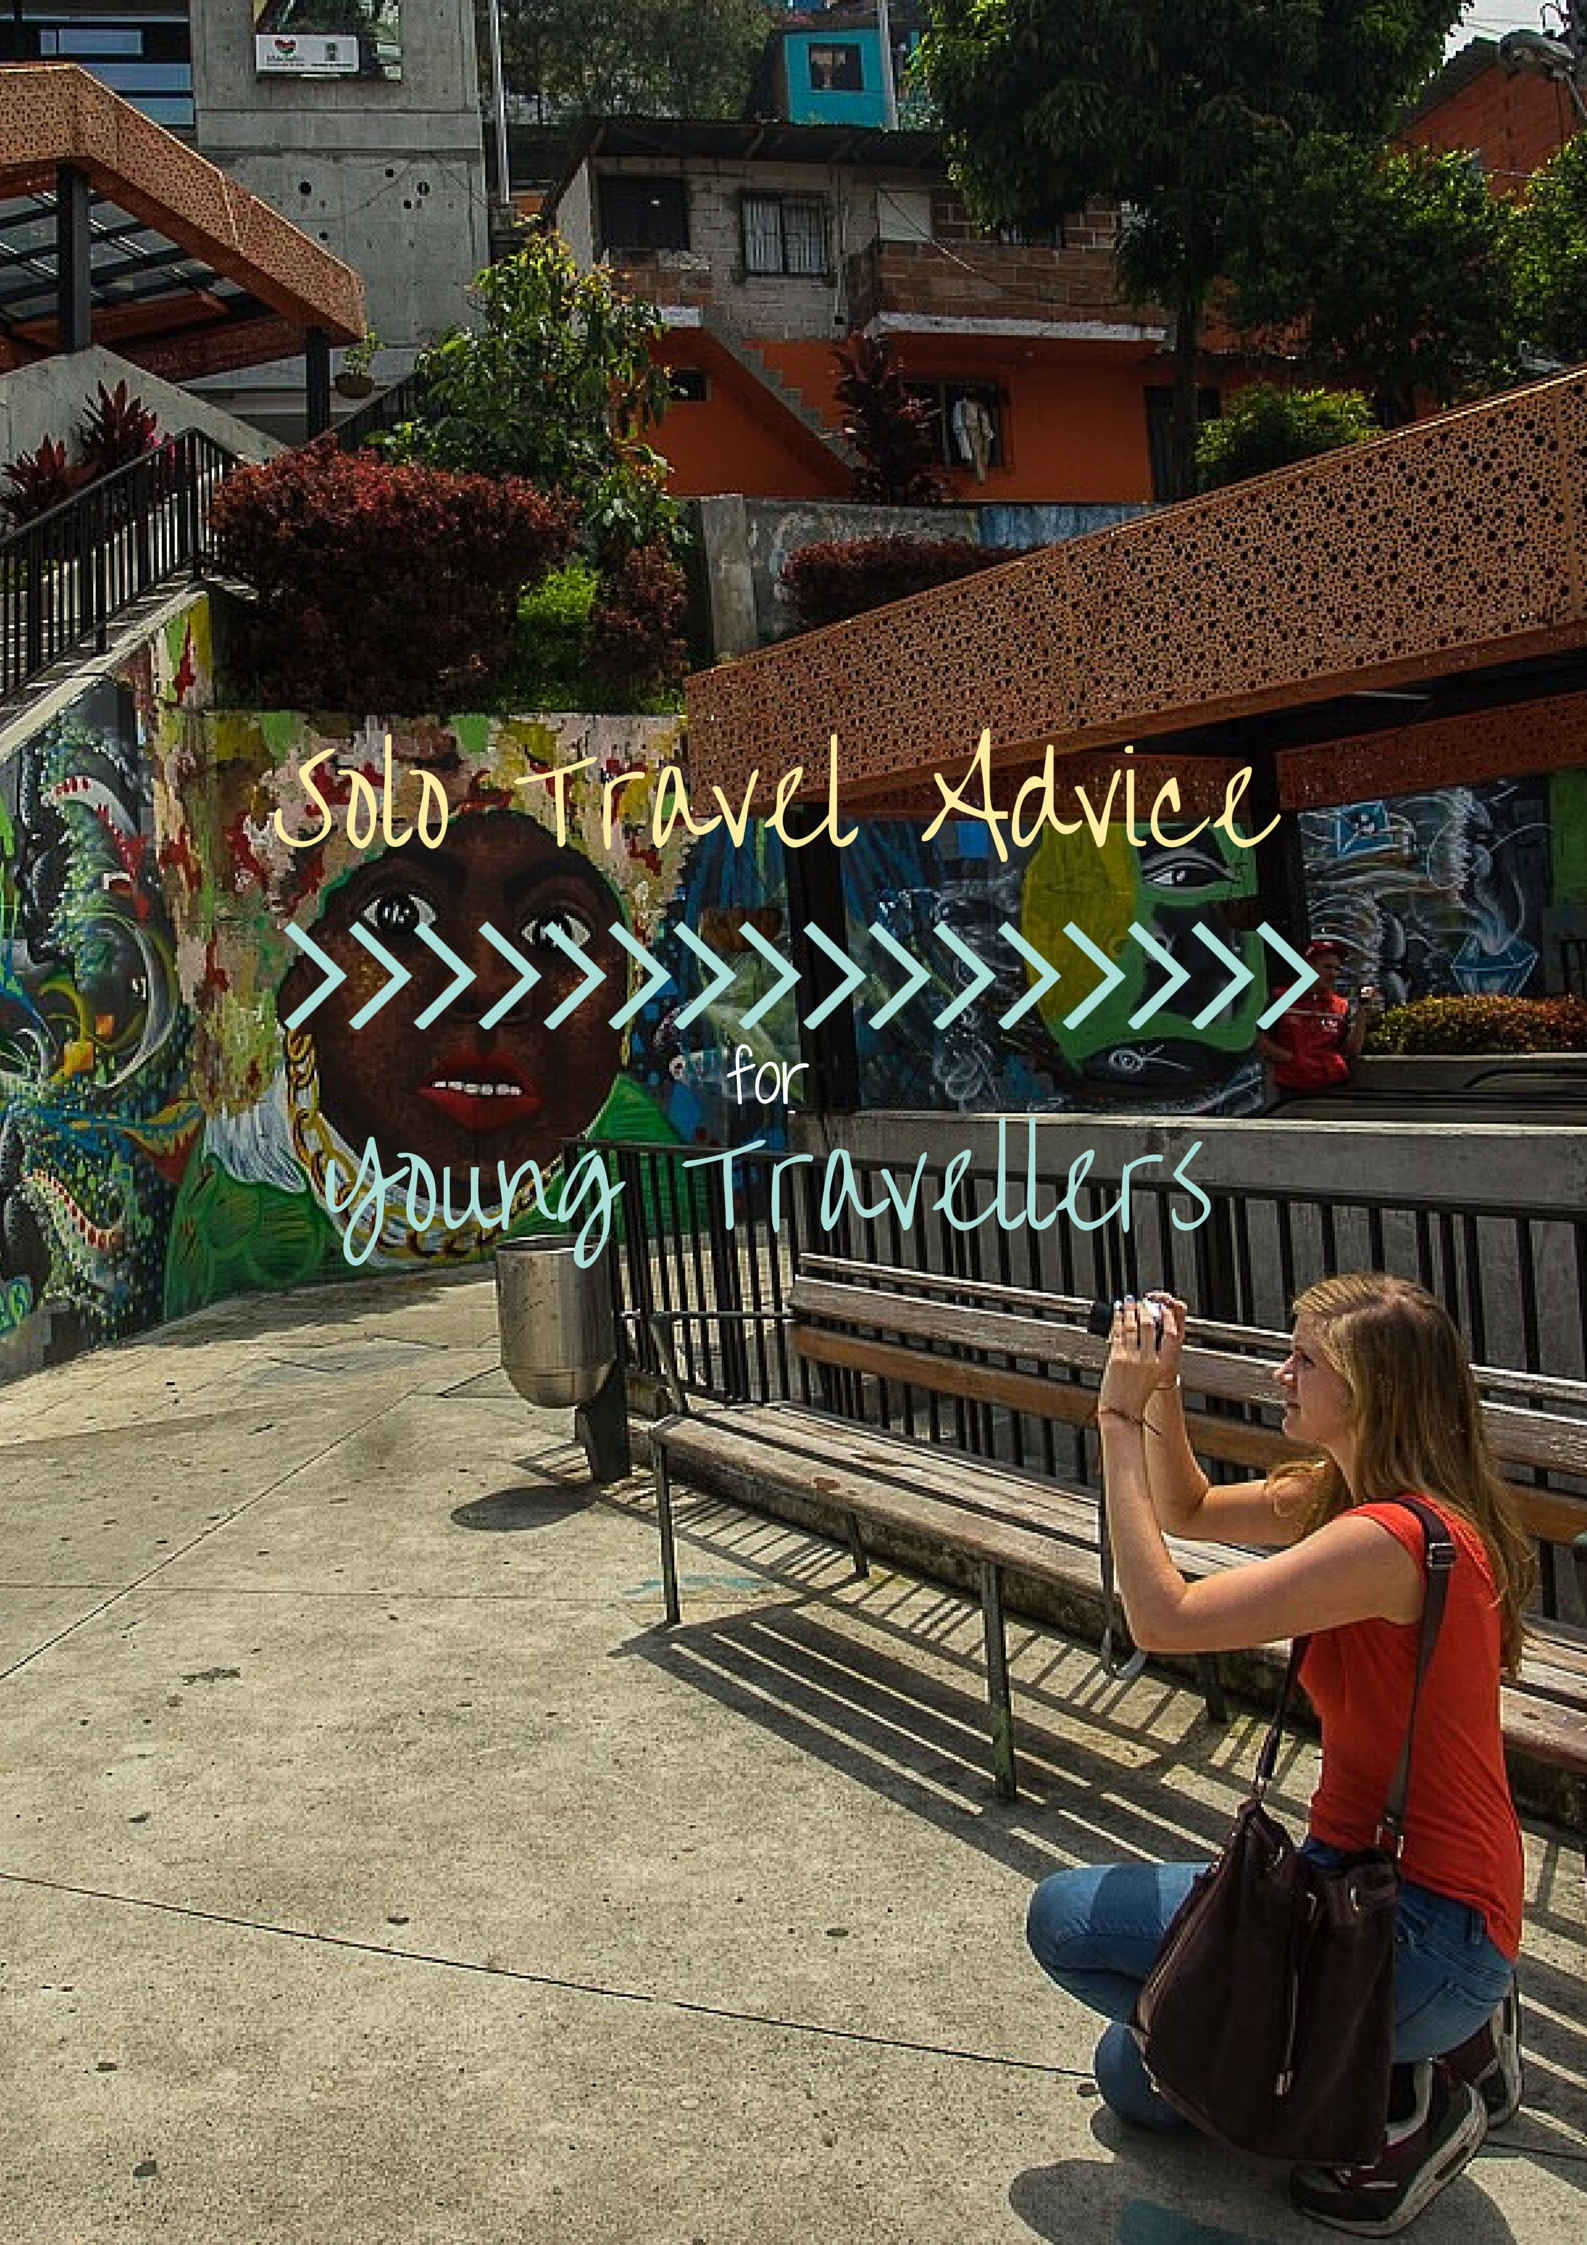 Travel advice for 18 year olds who want to travel solo